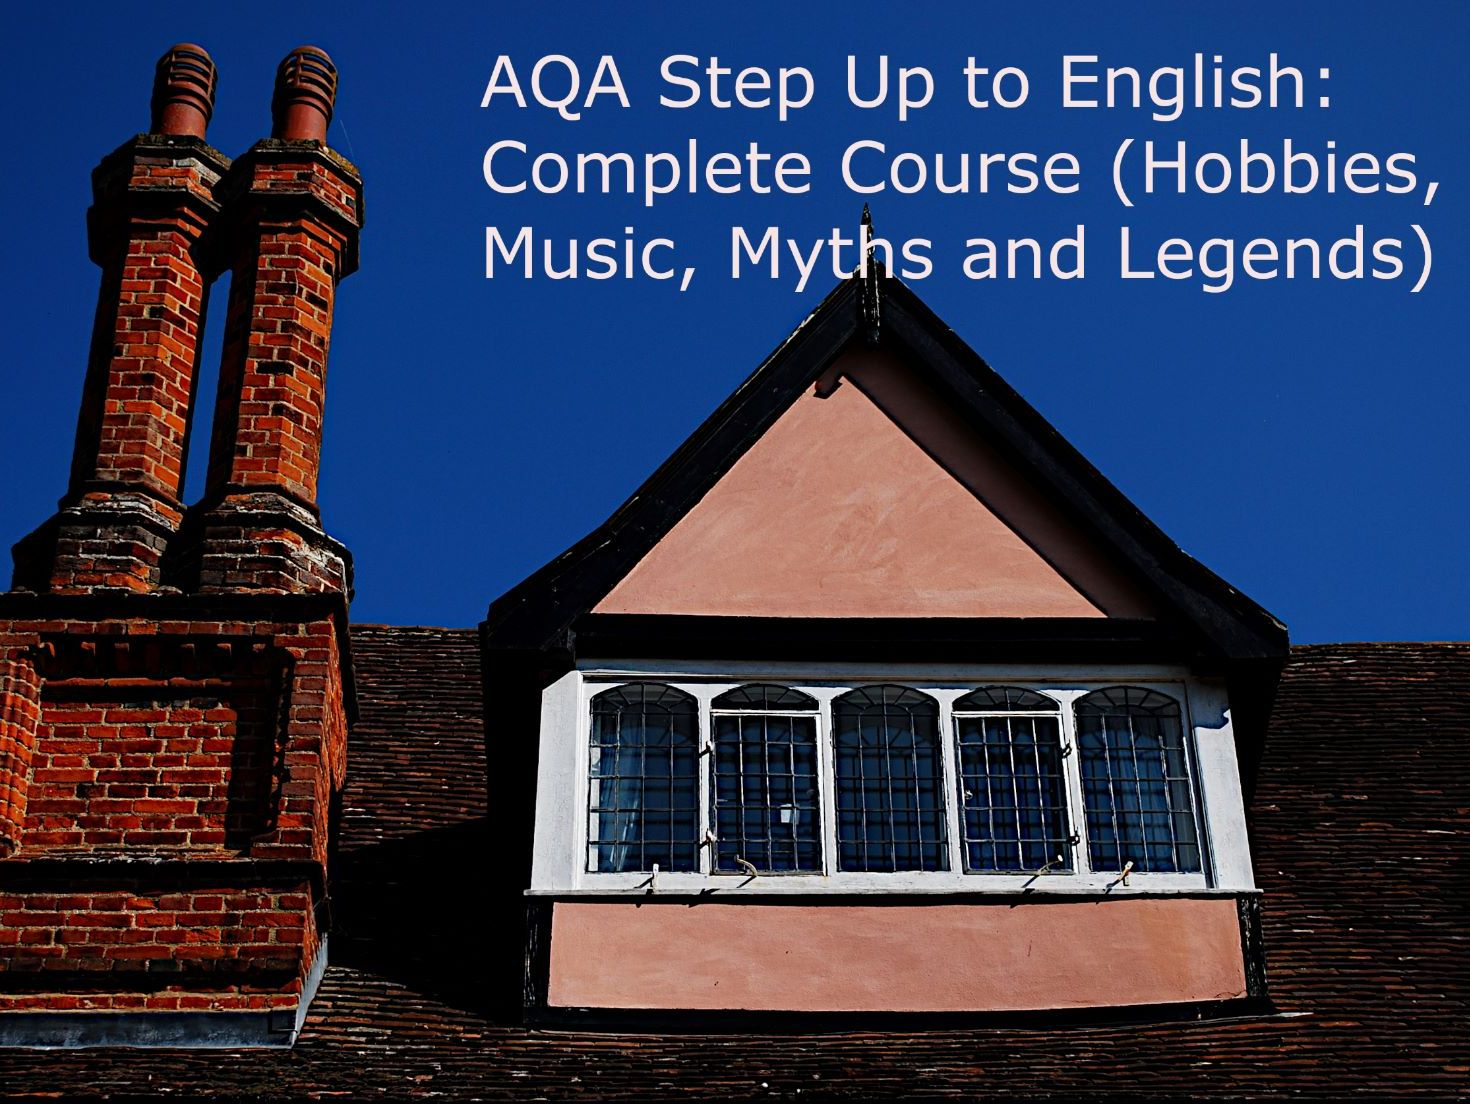 AQA Step Up to English: Complete Course (Hobbies, Music, Myths and Legends)